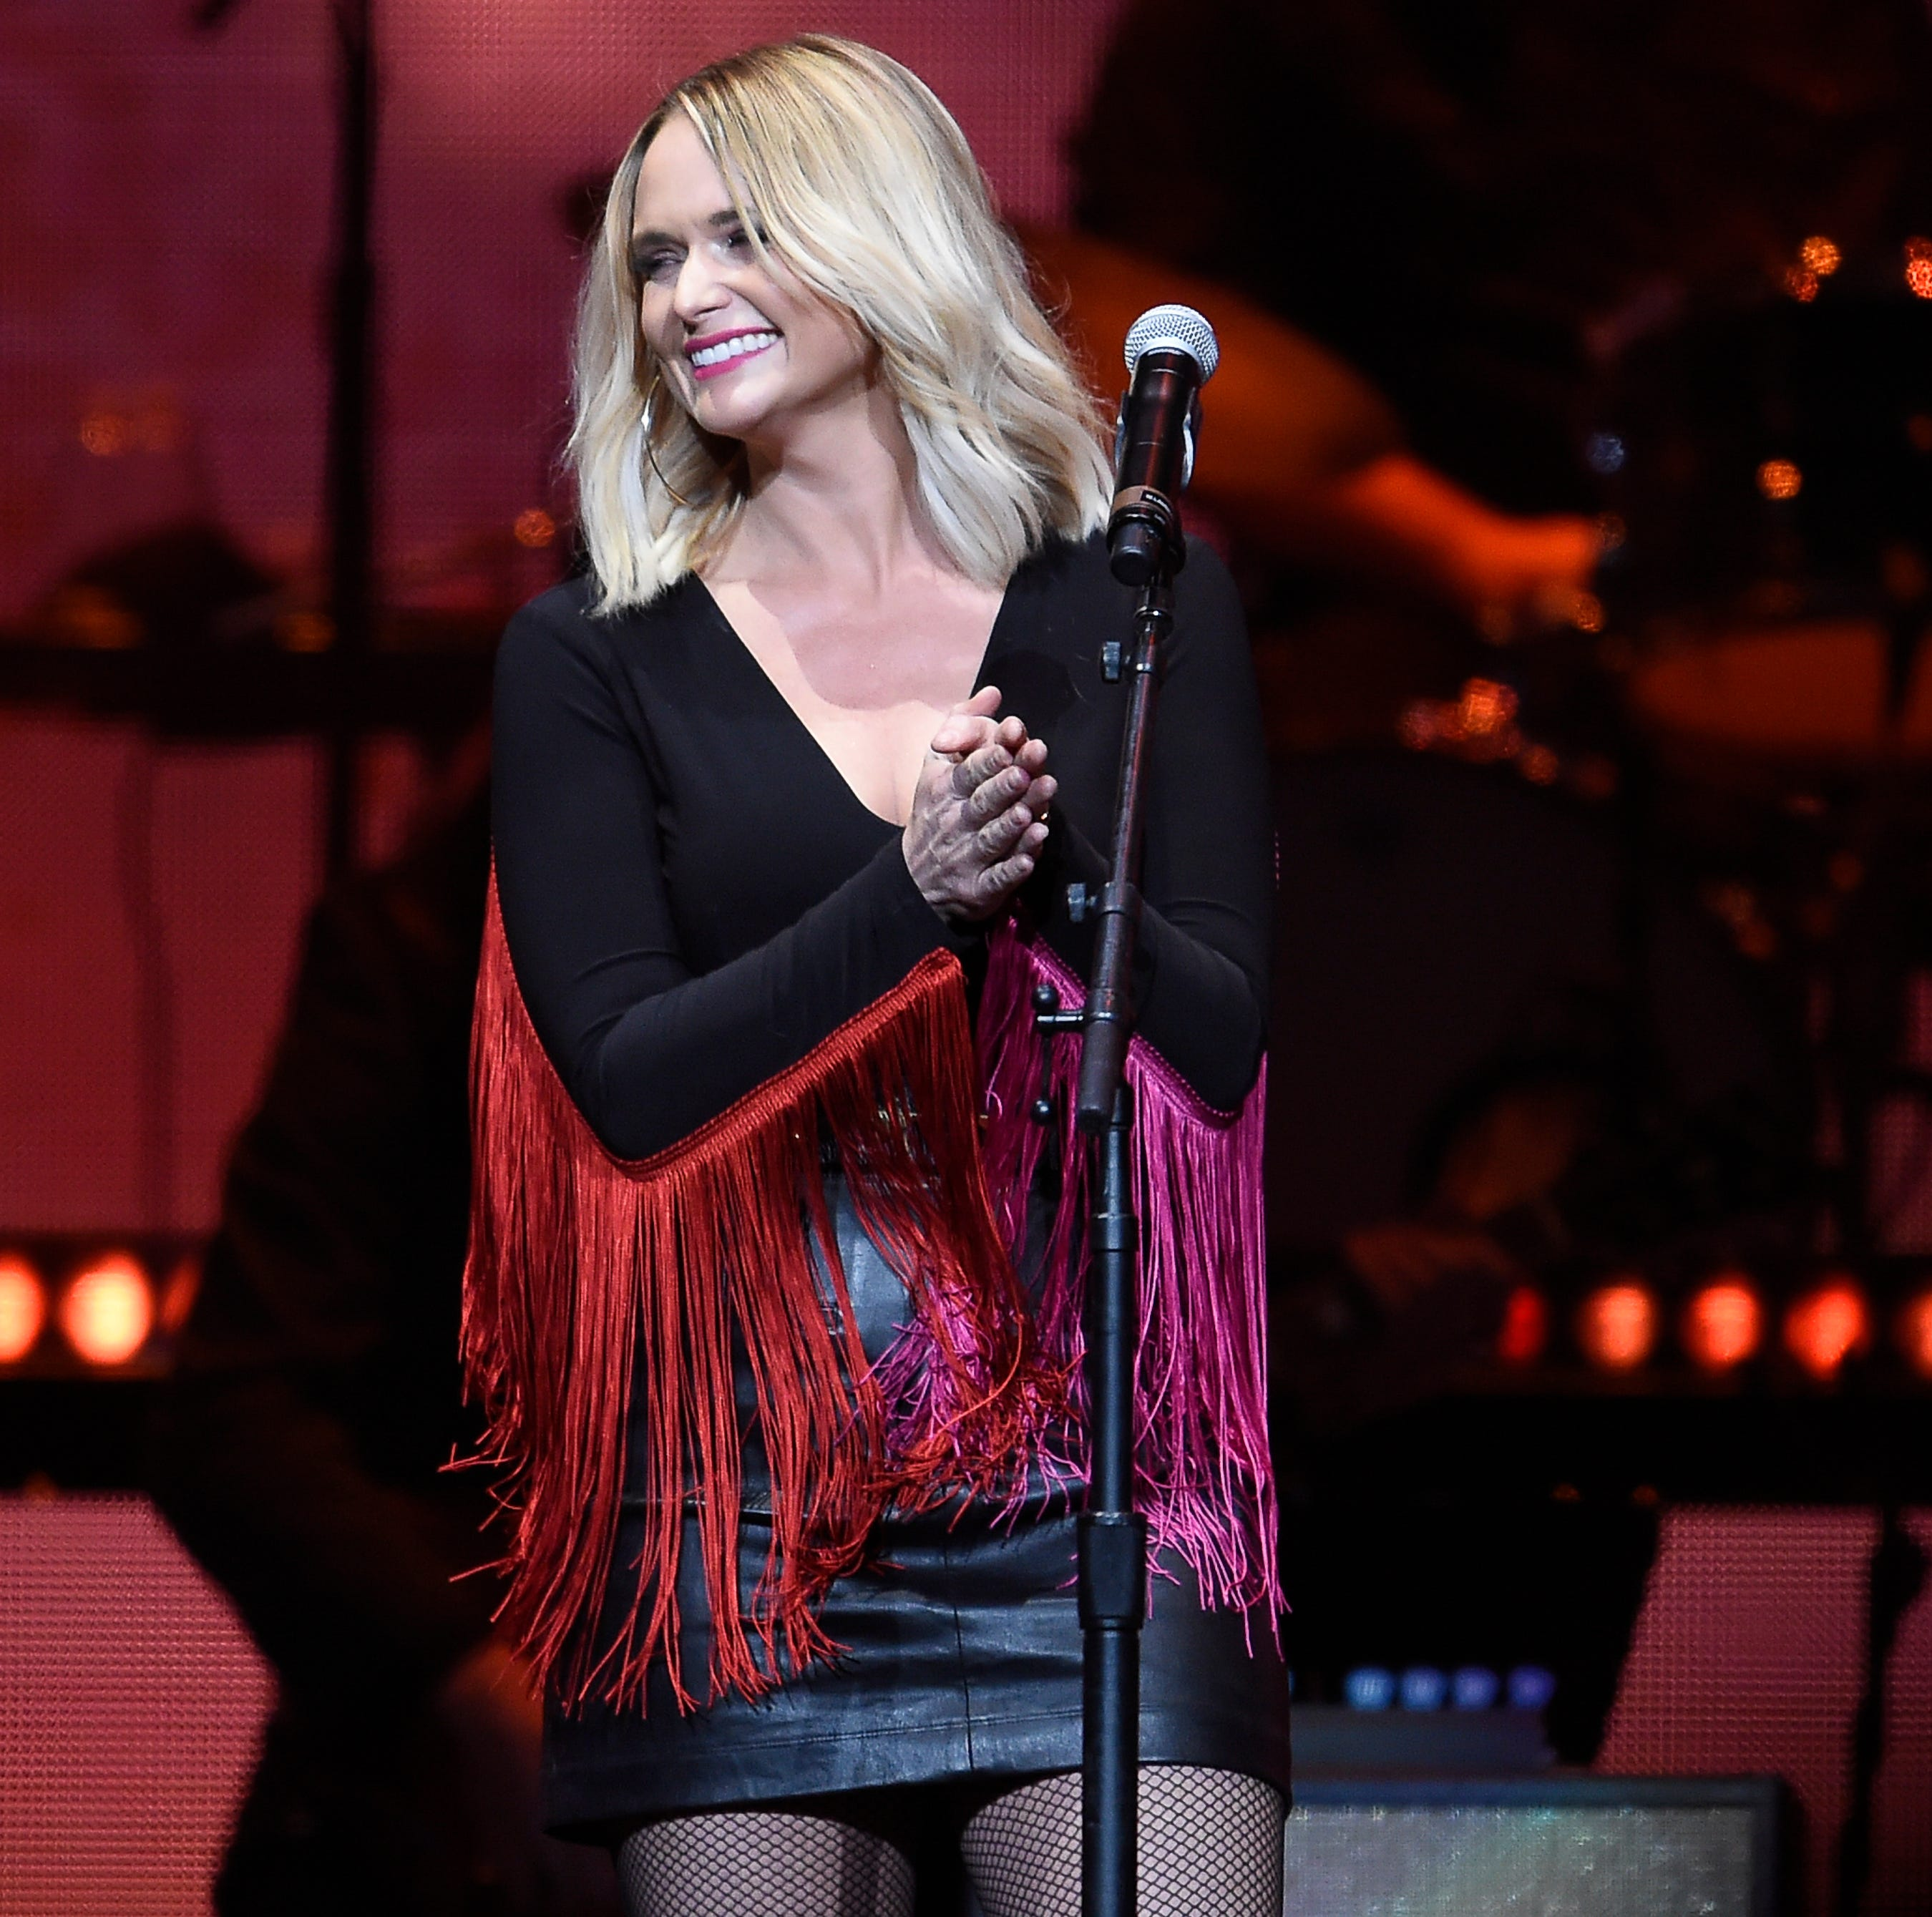 Miranda Lambert to lead MuttNation Mutt March during CMA Fest, she wants you to join her